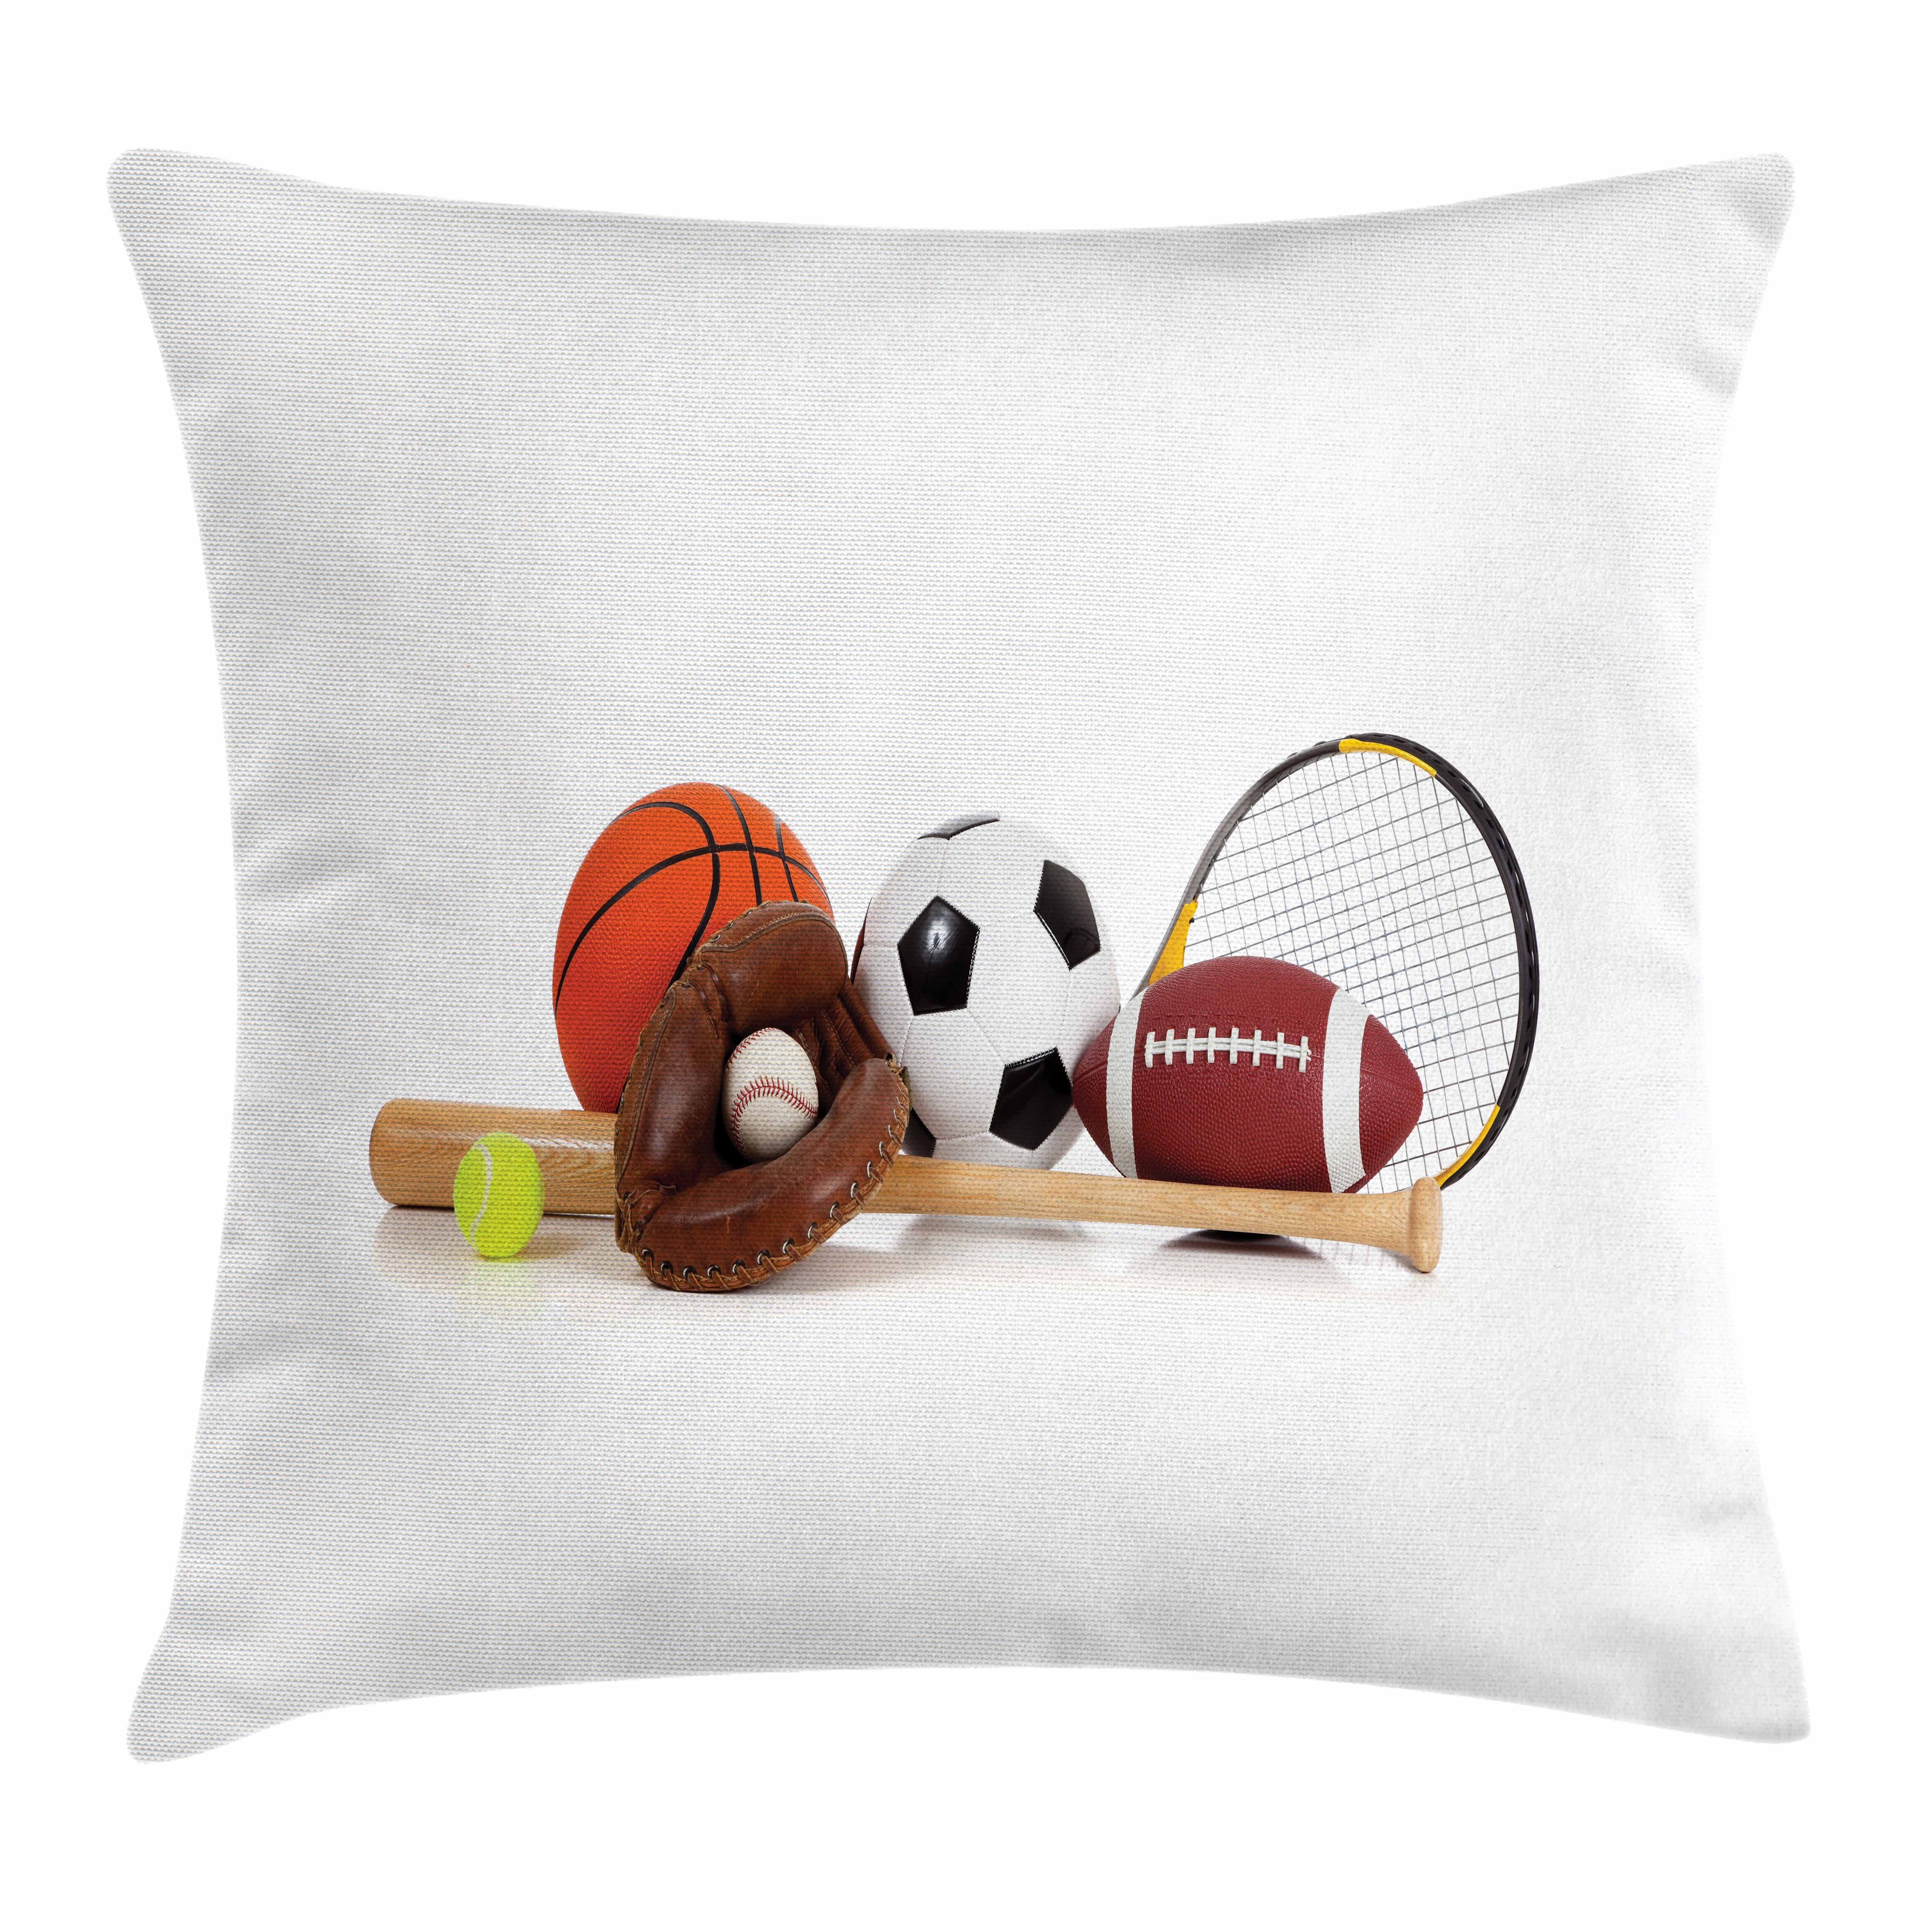 Youth Throw Pillow Cushion Cover, Assorted Sports Equipment Different Balls Bat Tennis Racket Baseball Glove on White, Decorative Square Accent Pillow Case, 16 X 16 Inches, Multicolor, by Ambesonne